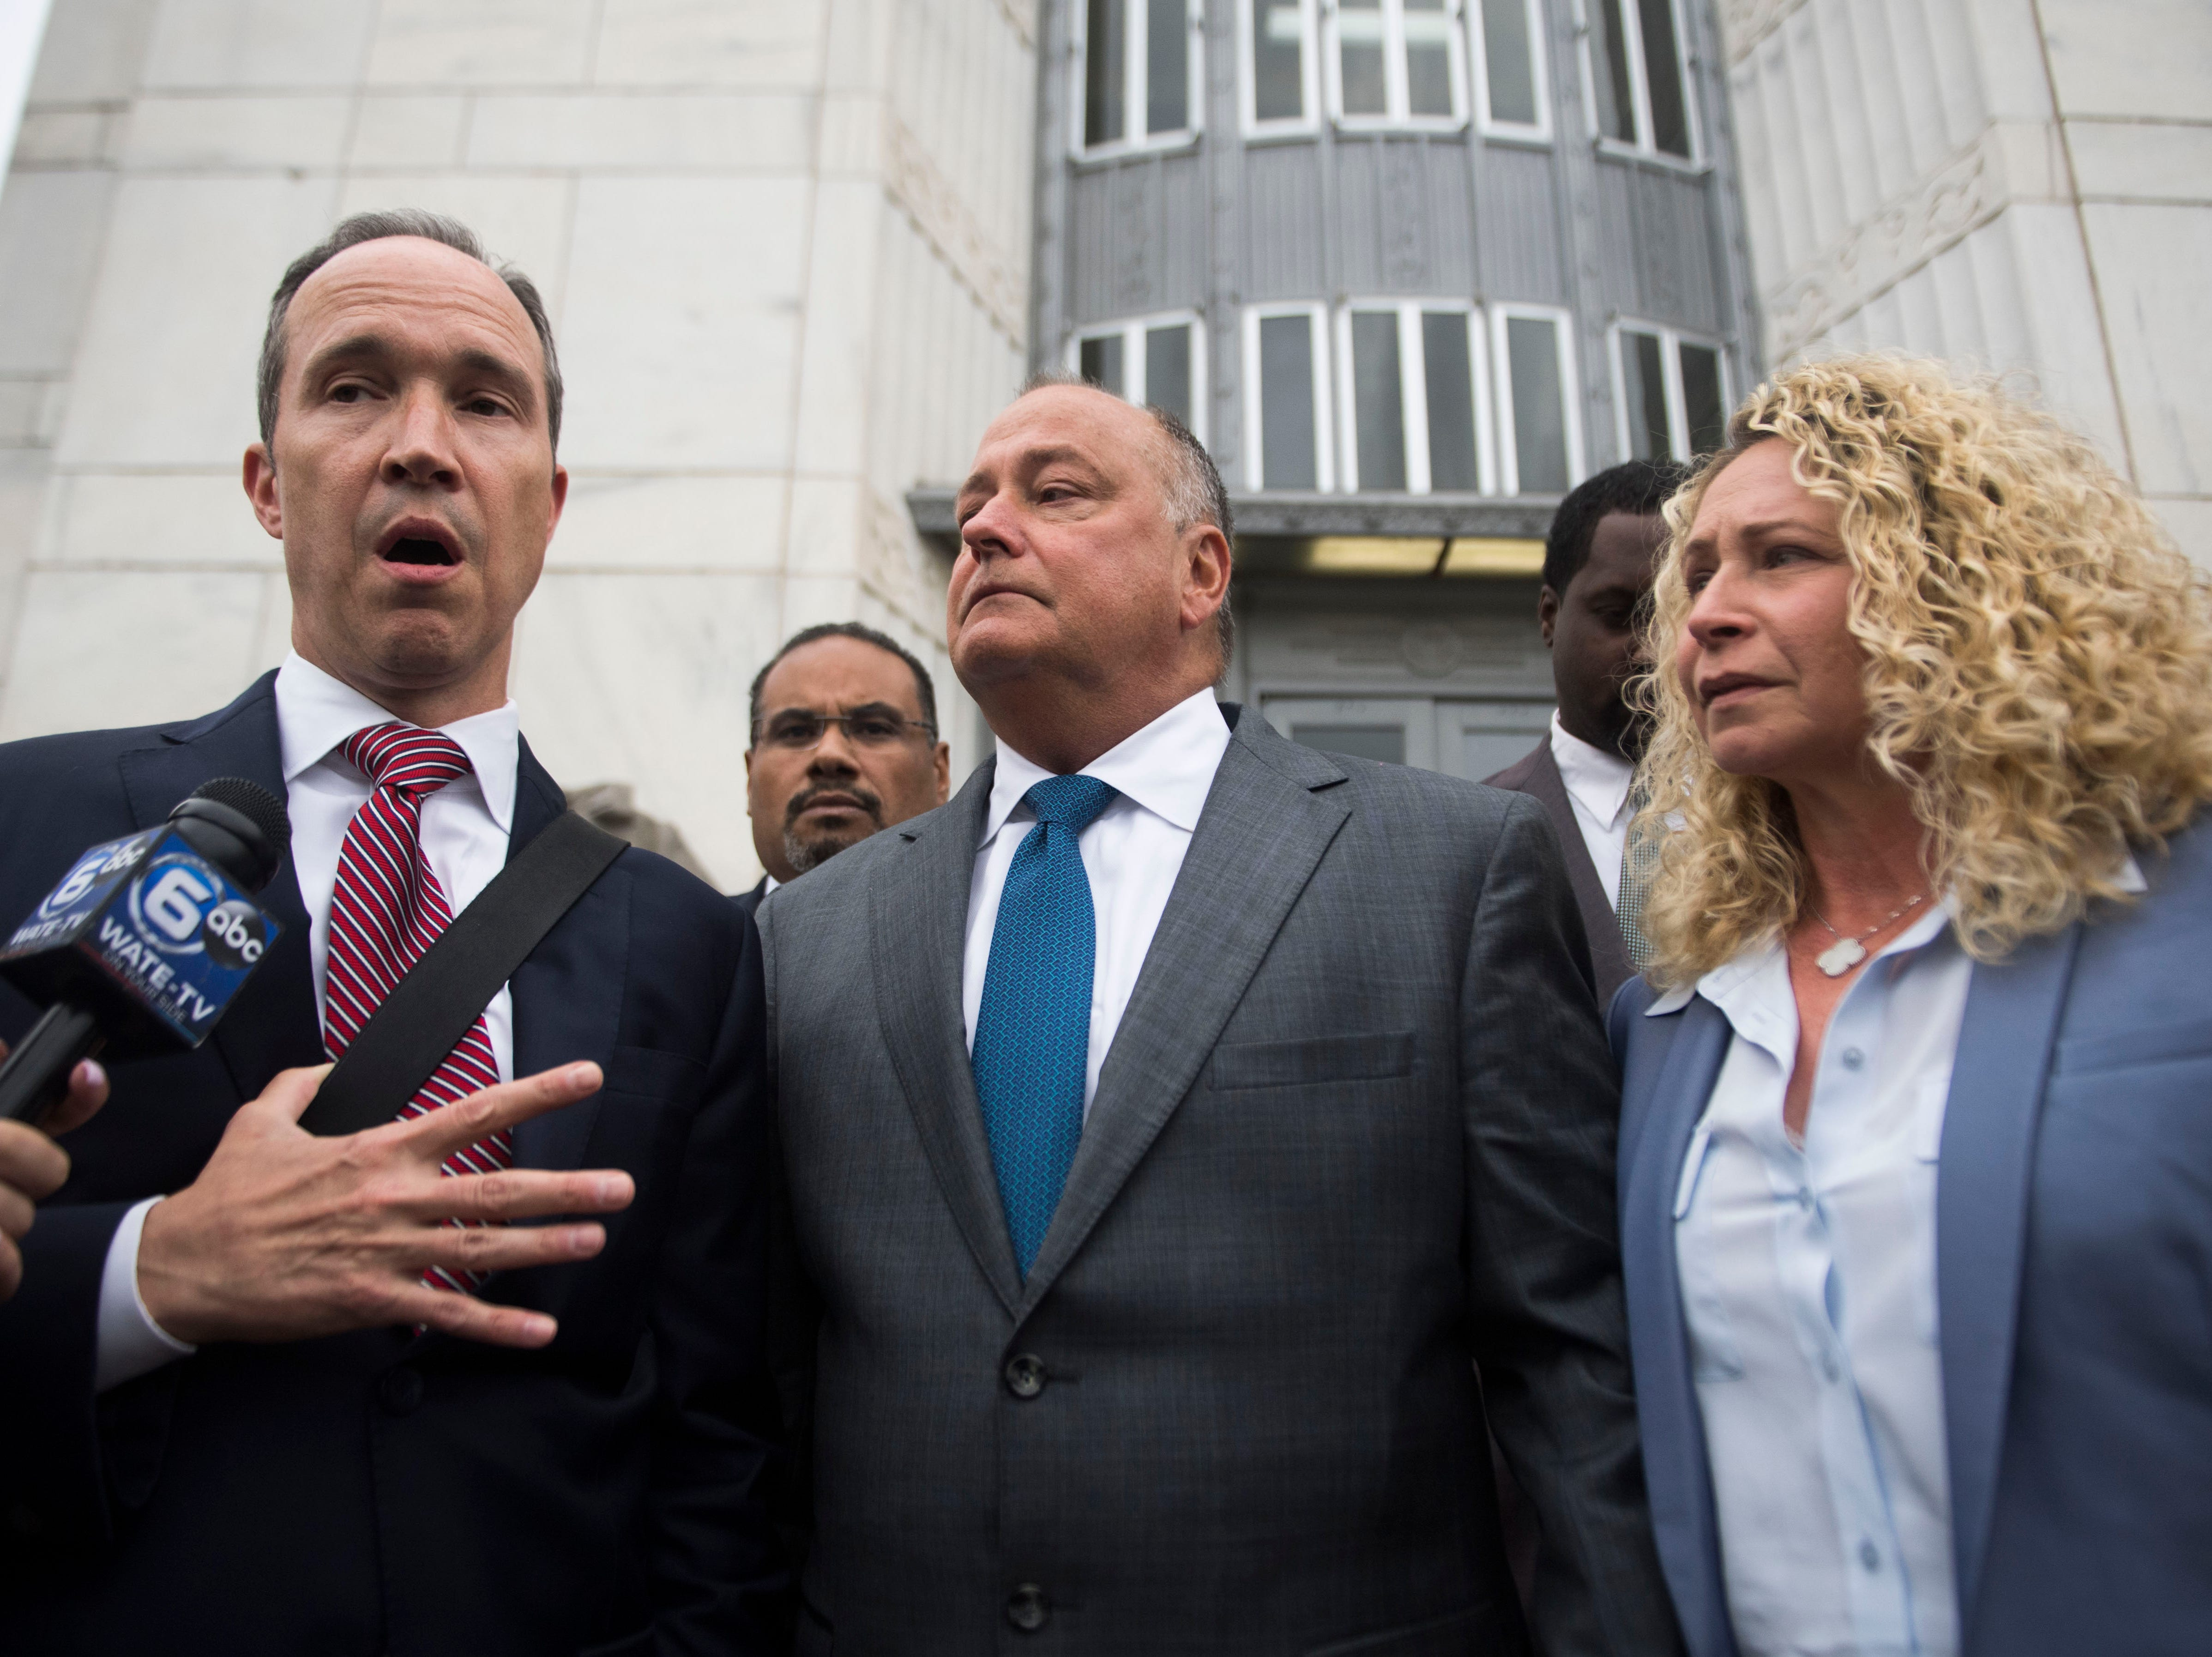 Former Pilot Flying J President Mark Hazelwood, center, exits the federal courthouse with his wife, Joanne, in Chattanooga on Sept. 26, 2018.  Hazelwood was sentenced to 150 months in prison and fined $750,000 by Senior U.S. District Judge Curtis L. Collier.